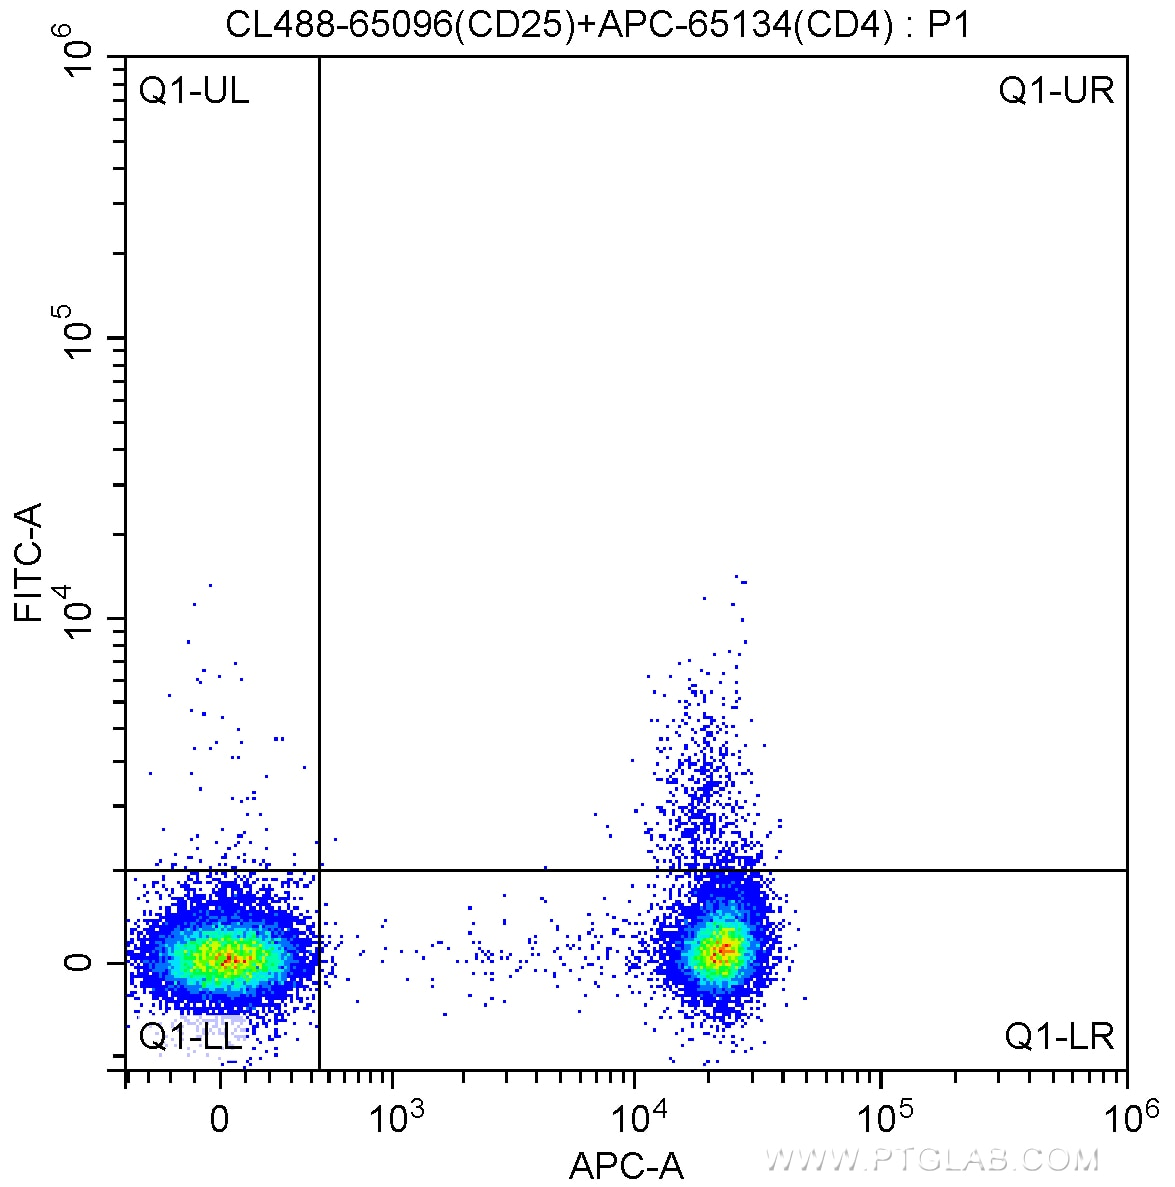 FC experiment of human peripheral blood lymphocytes using CL488-65096